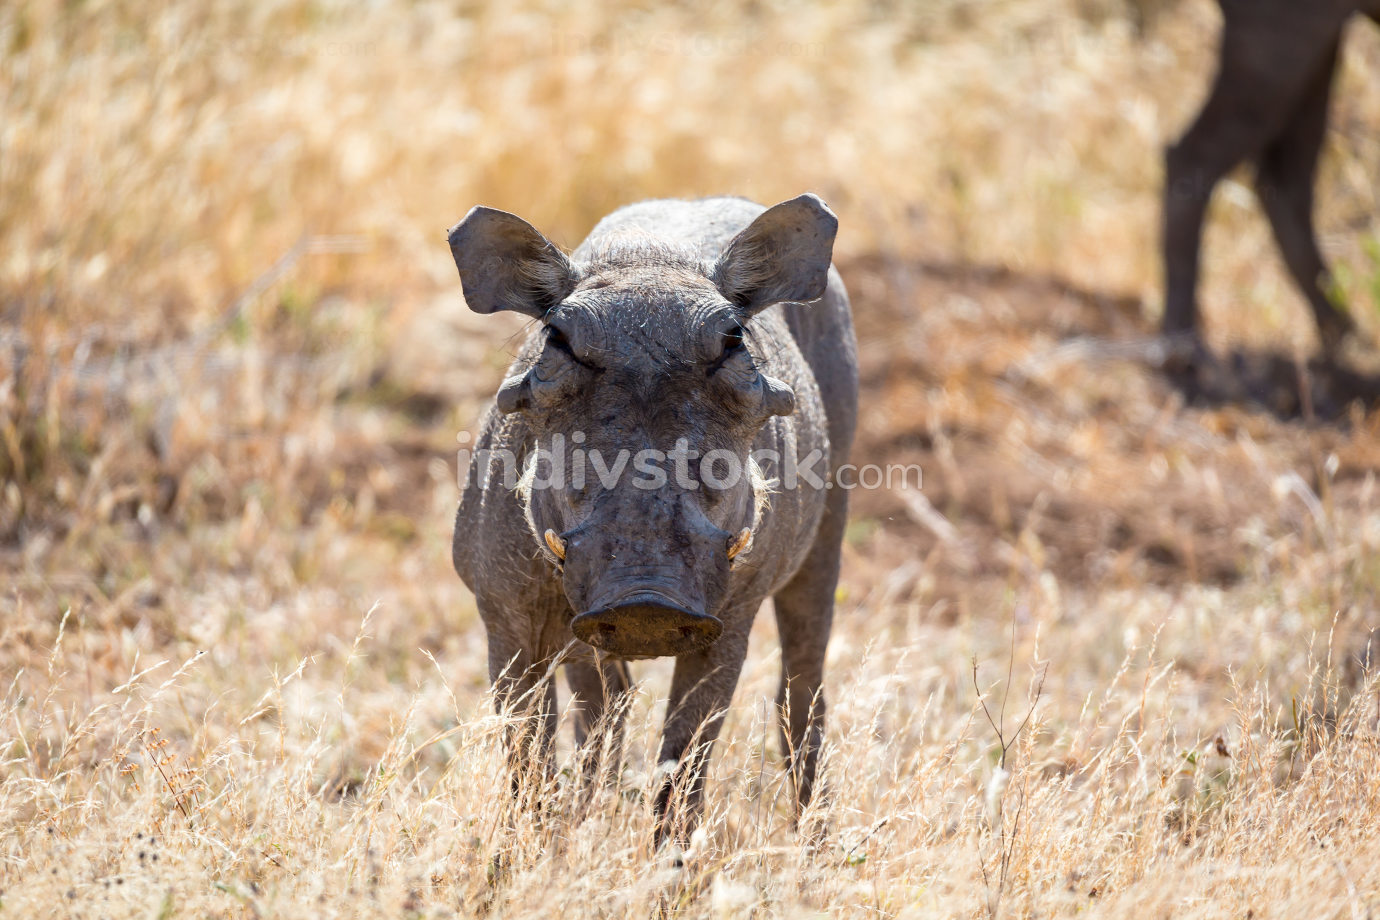 A portrait of a warthog in the middle of a grass landscape